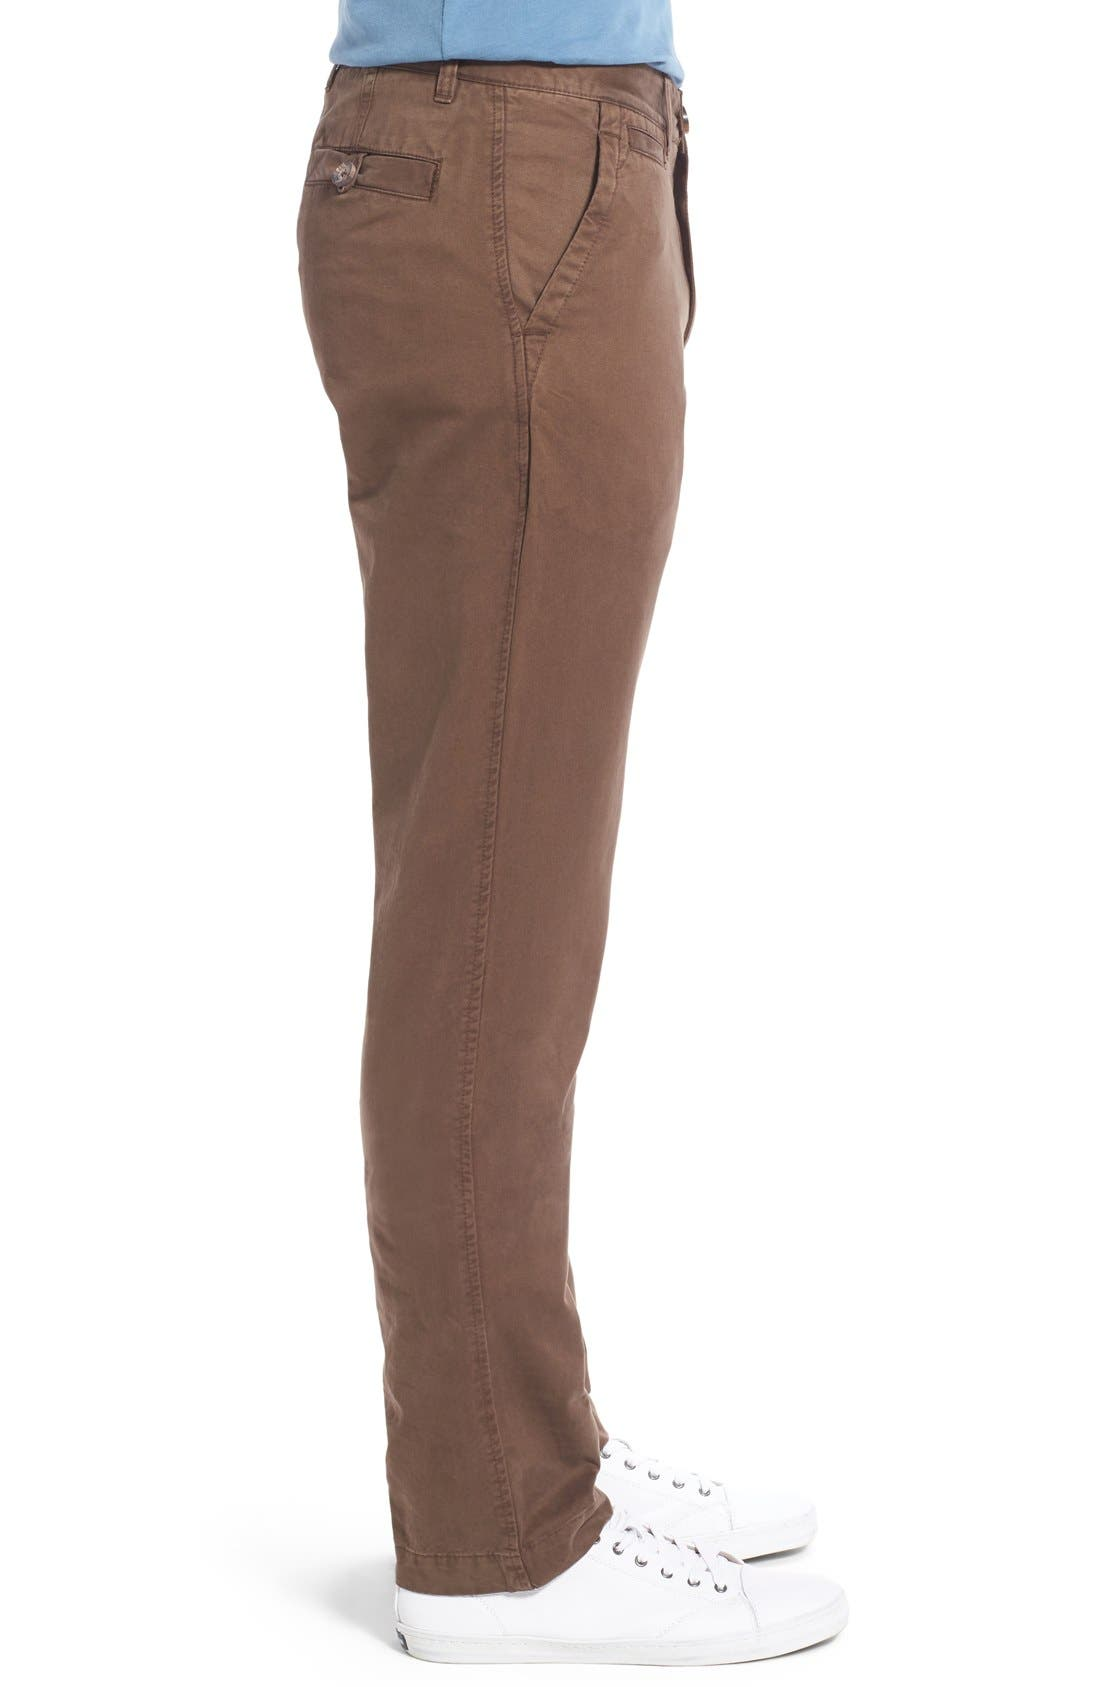 'Sahara' Trim Fit Vintage Washed Twill Chinos,                             Alternate thumbnail 23, color,